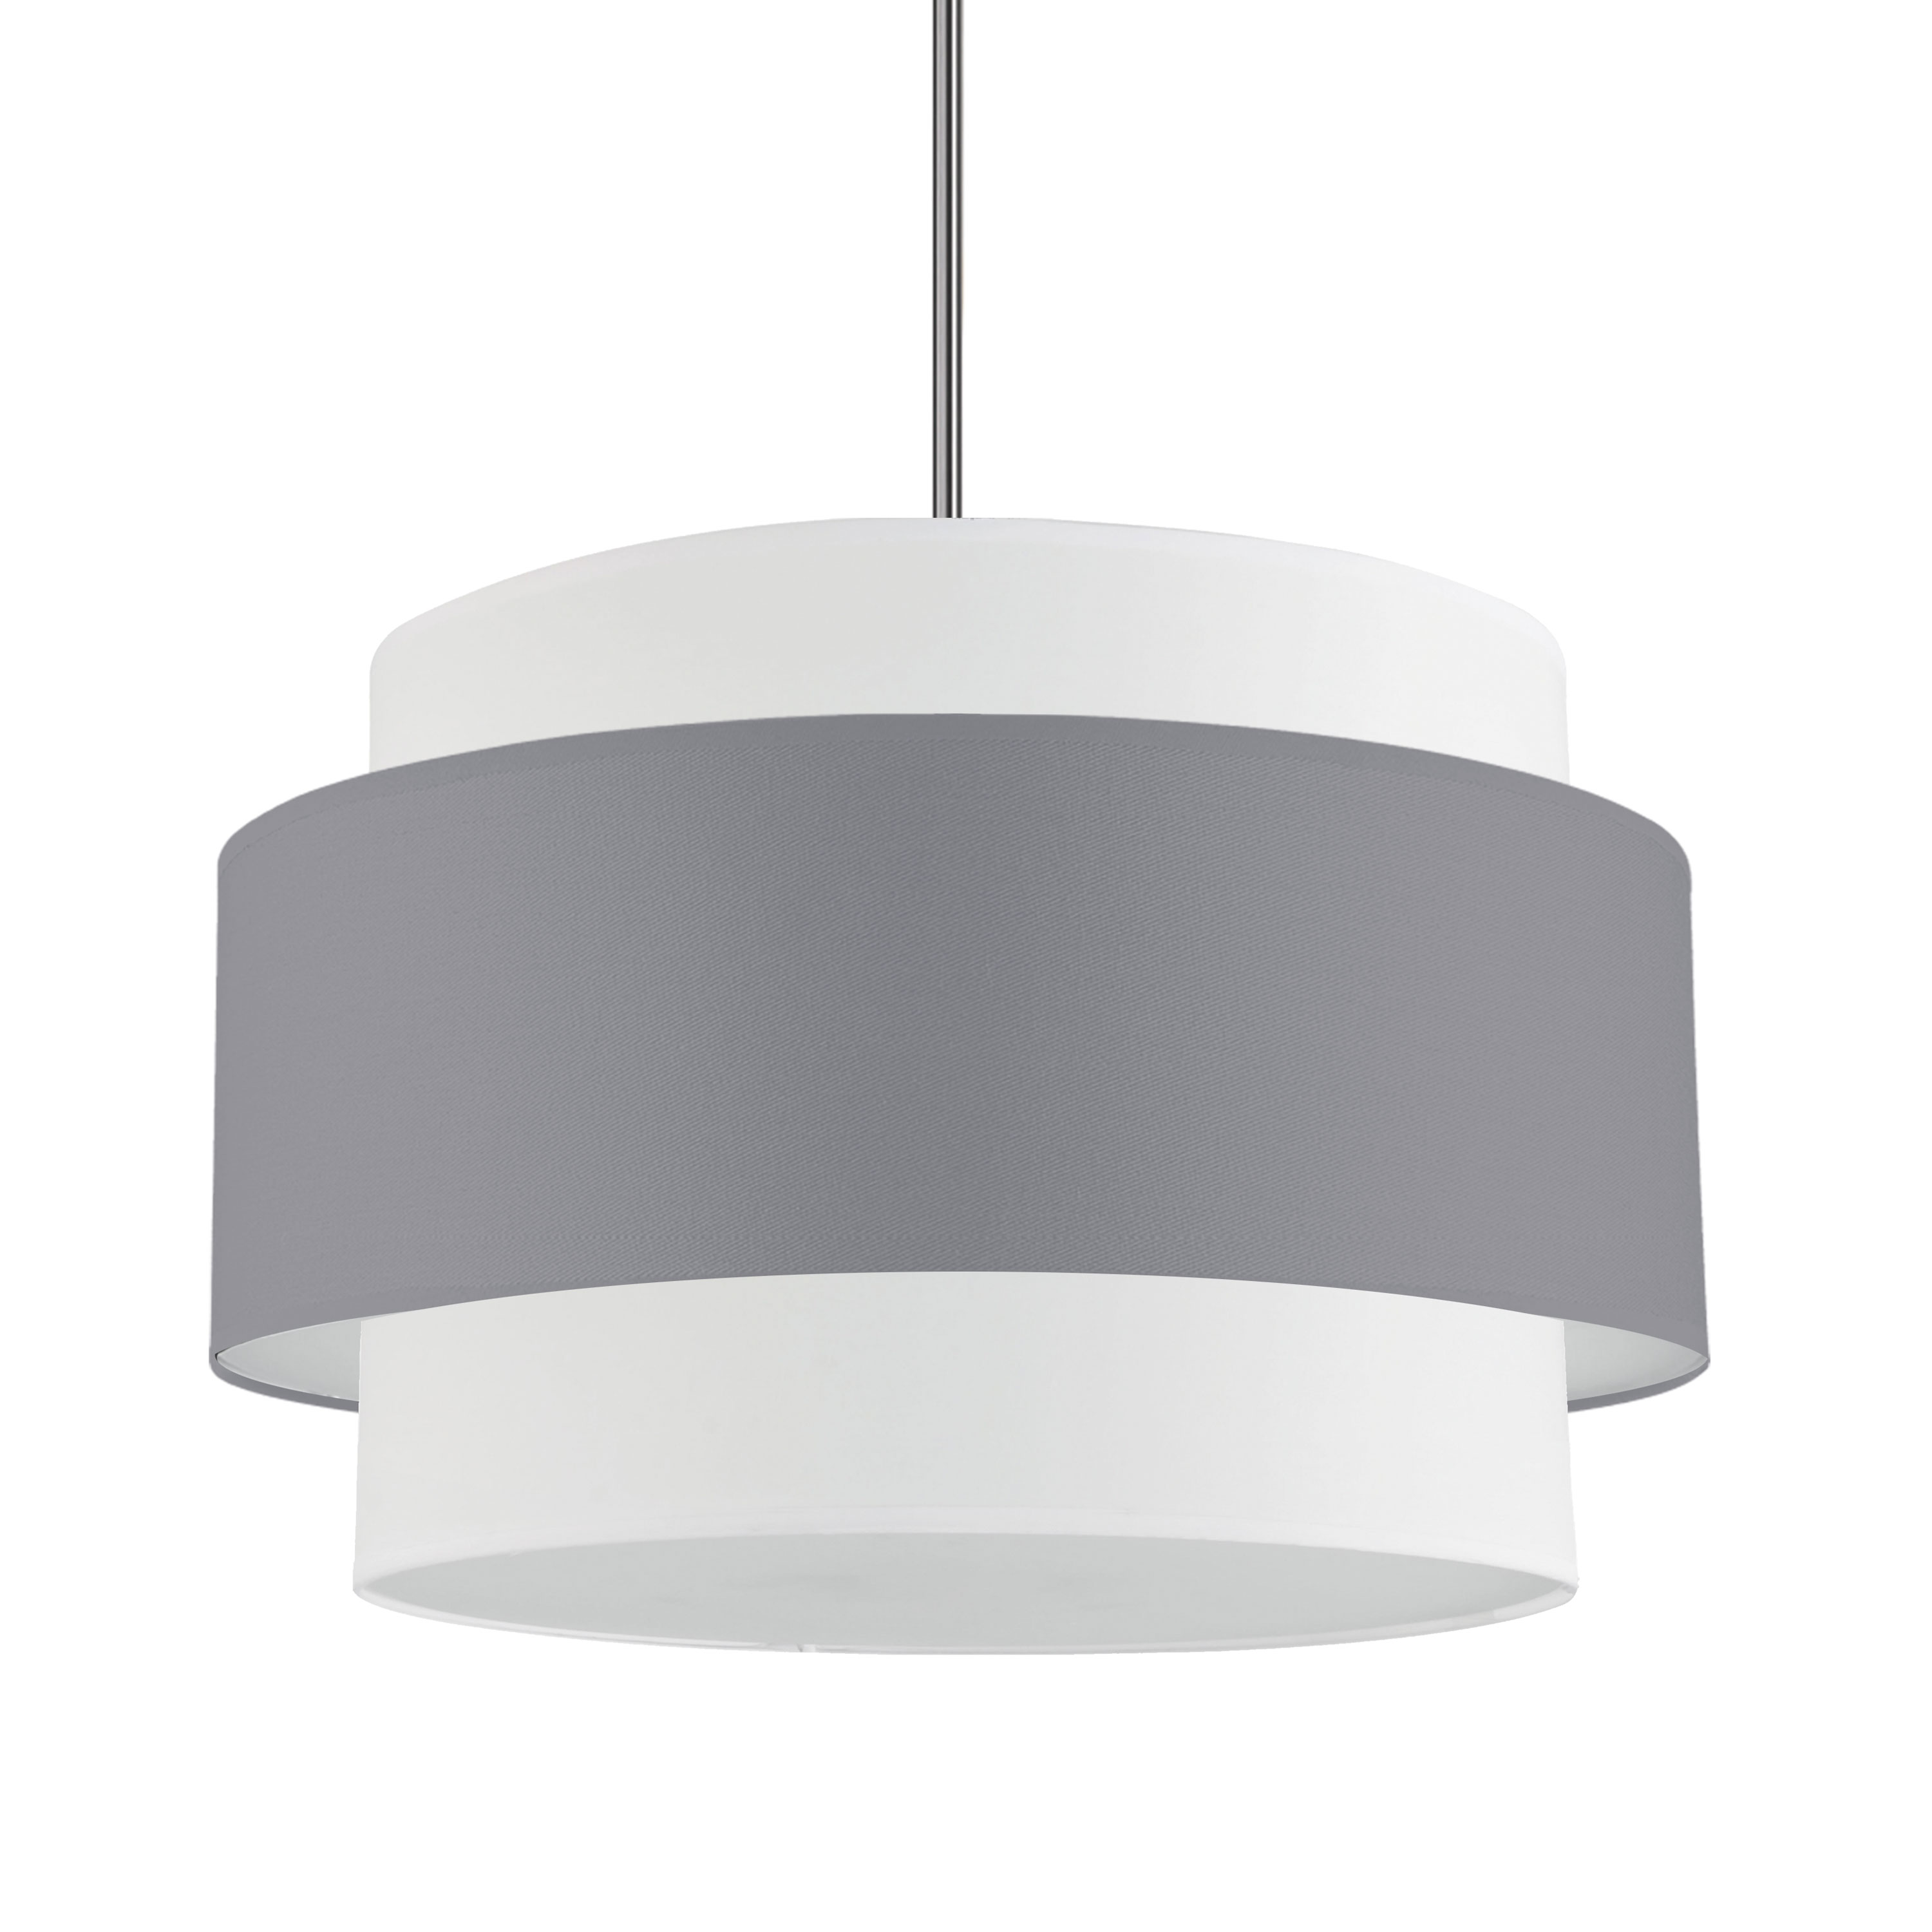 4LT Incandescent Chandelier, PC w/ GRY&WH Shade